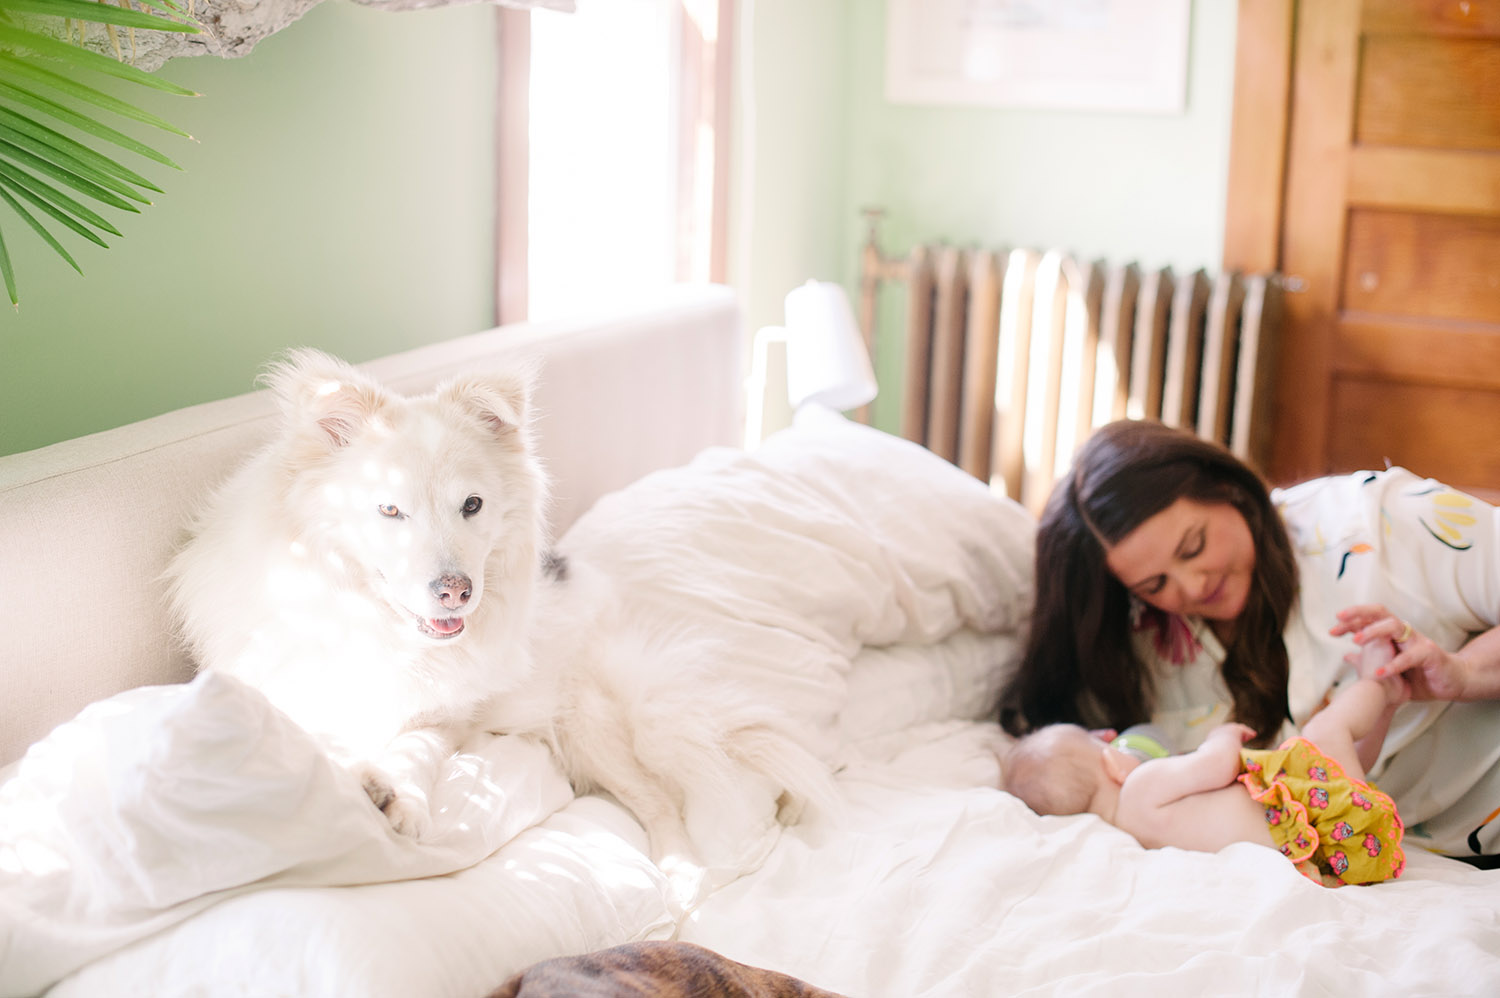 a mom and a baby on a bed with a dog